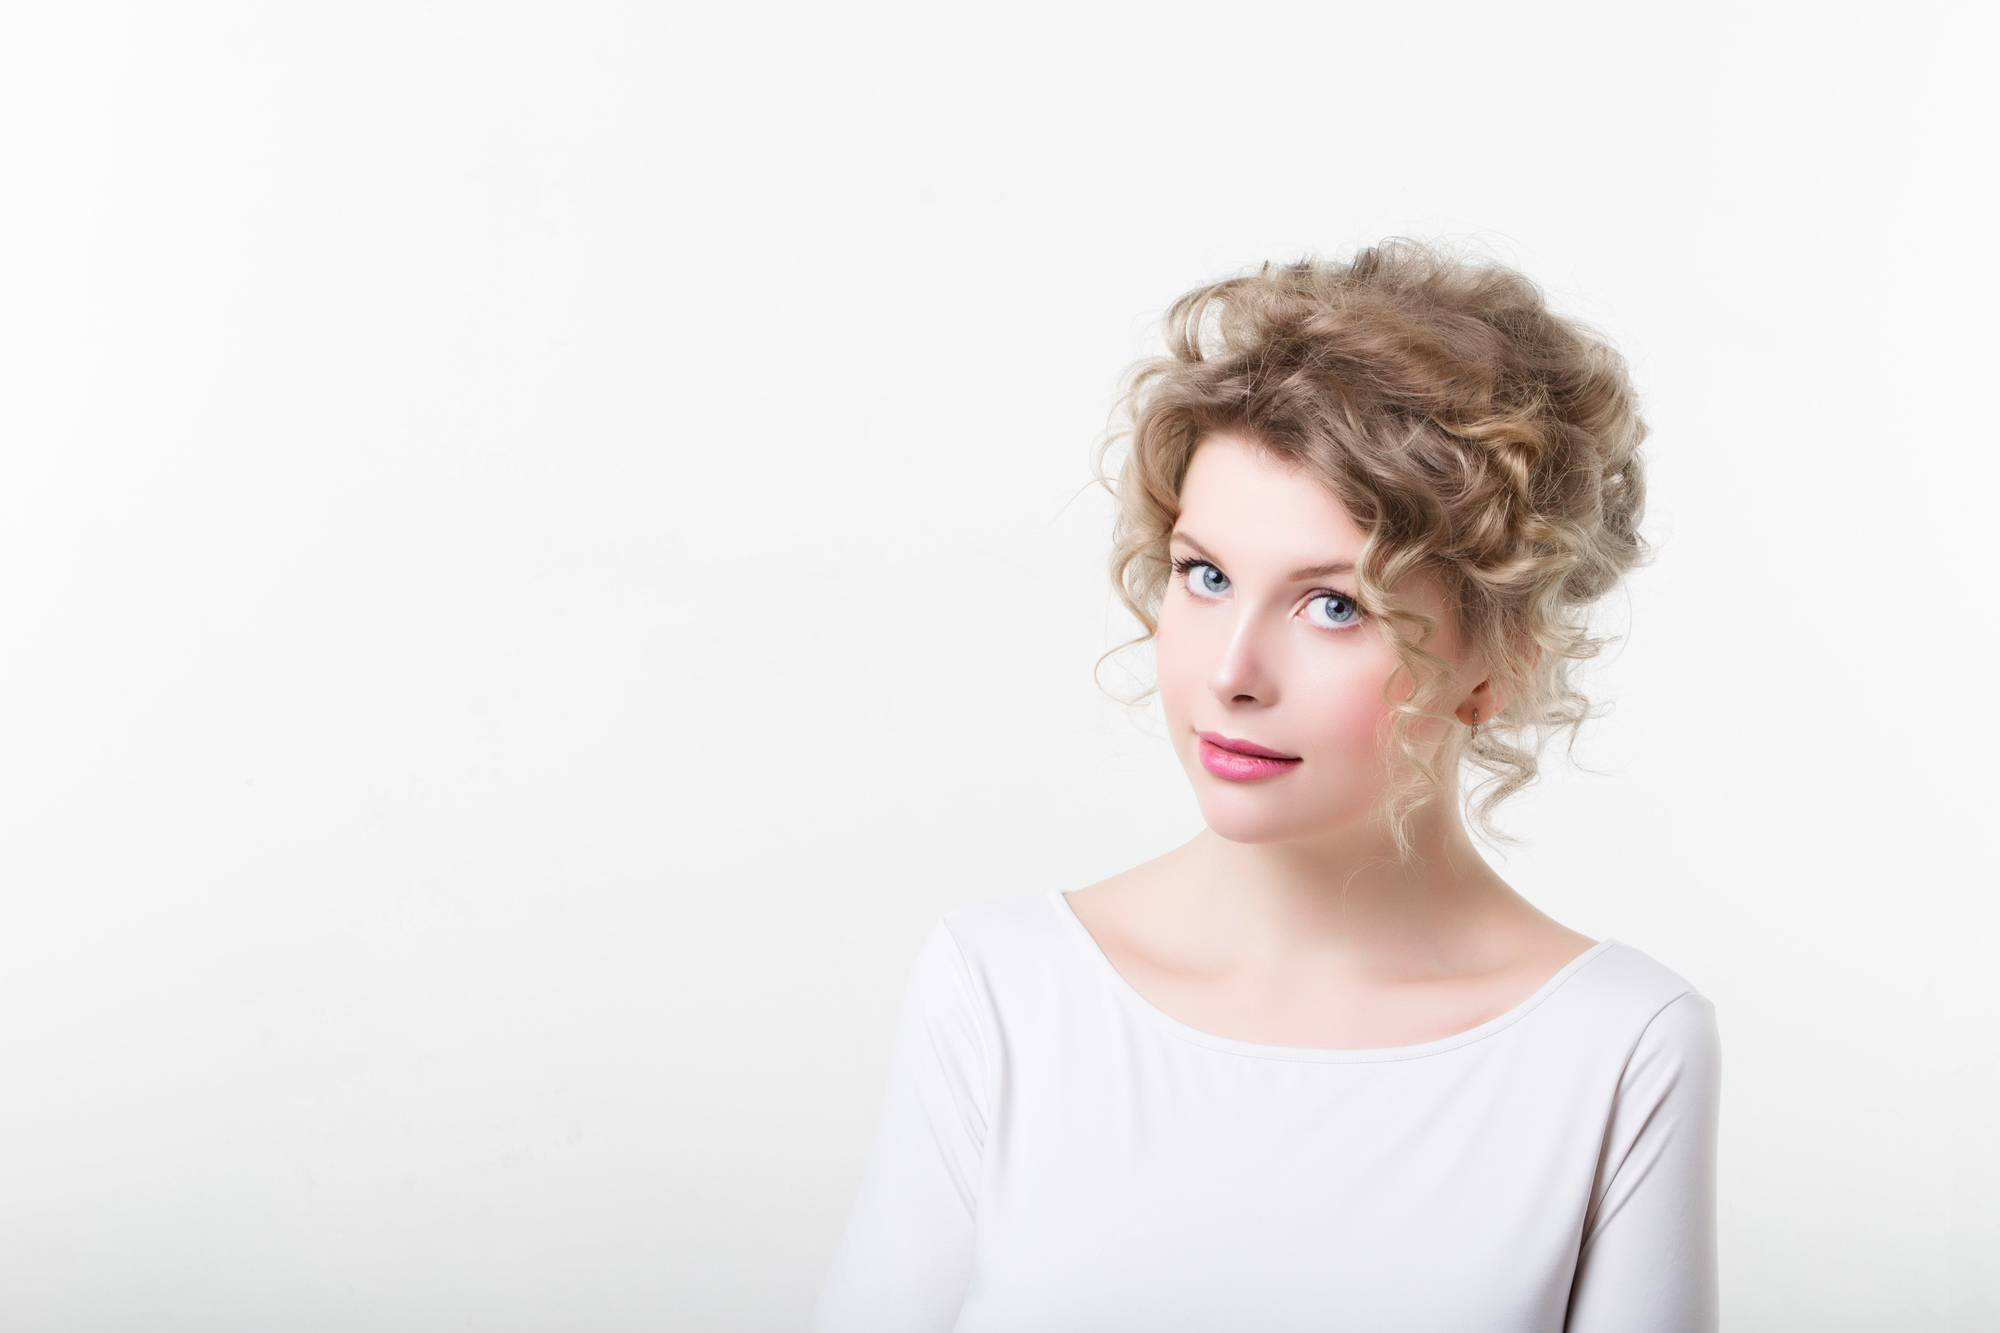 Curly Hairstyles For Thin Hair include effortless updos.